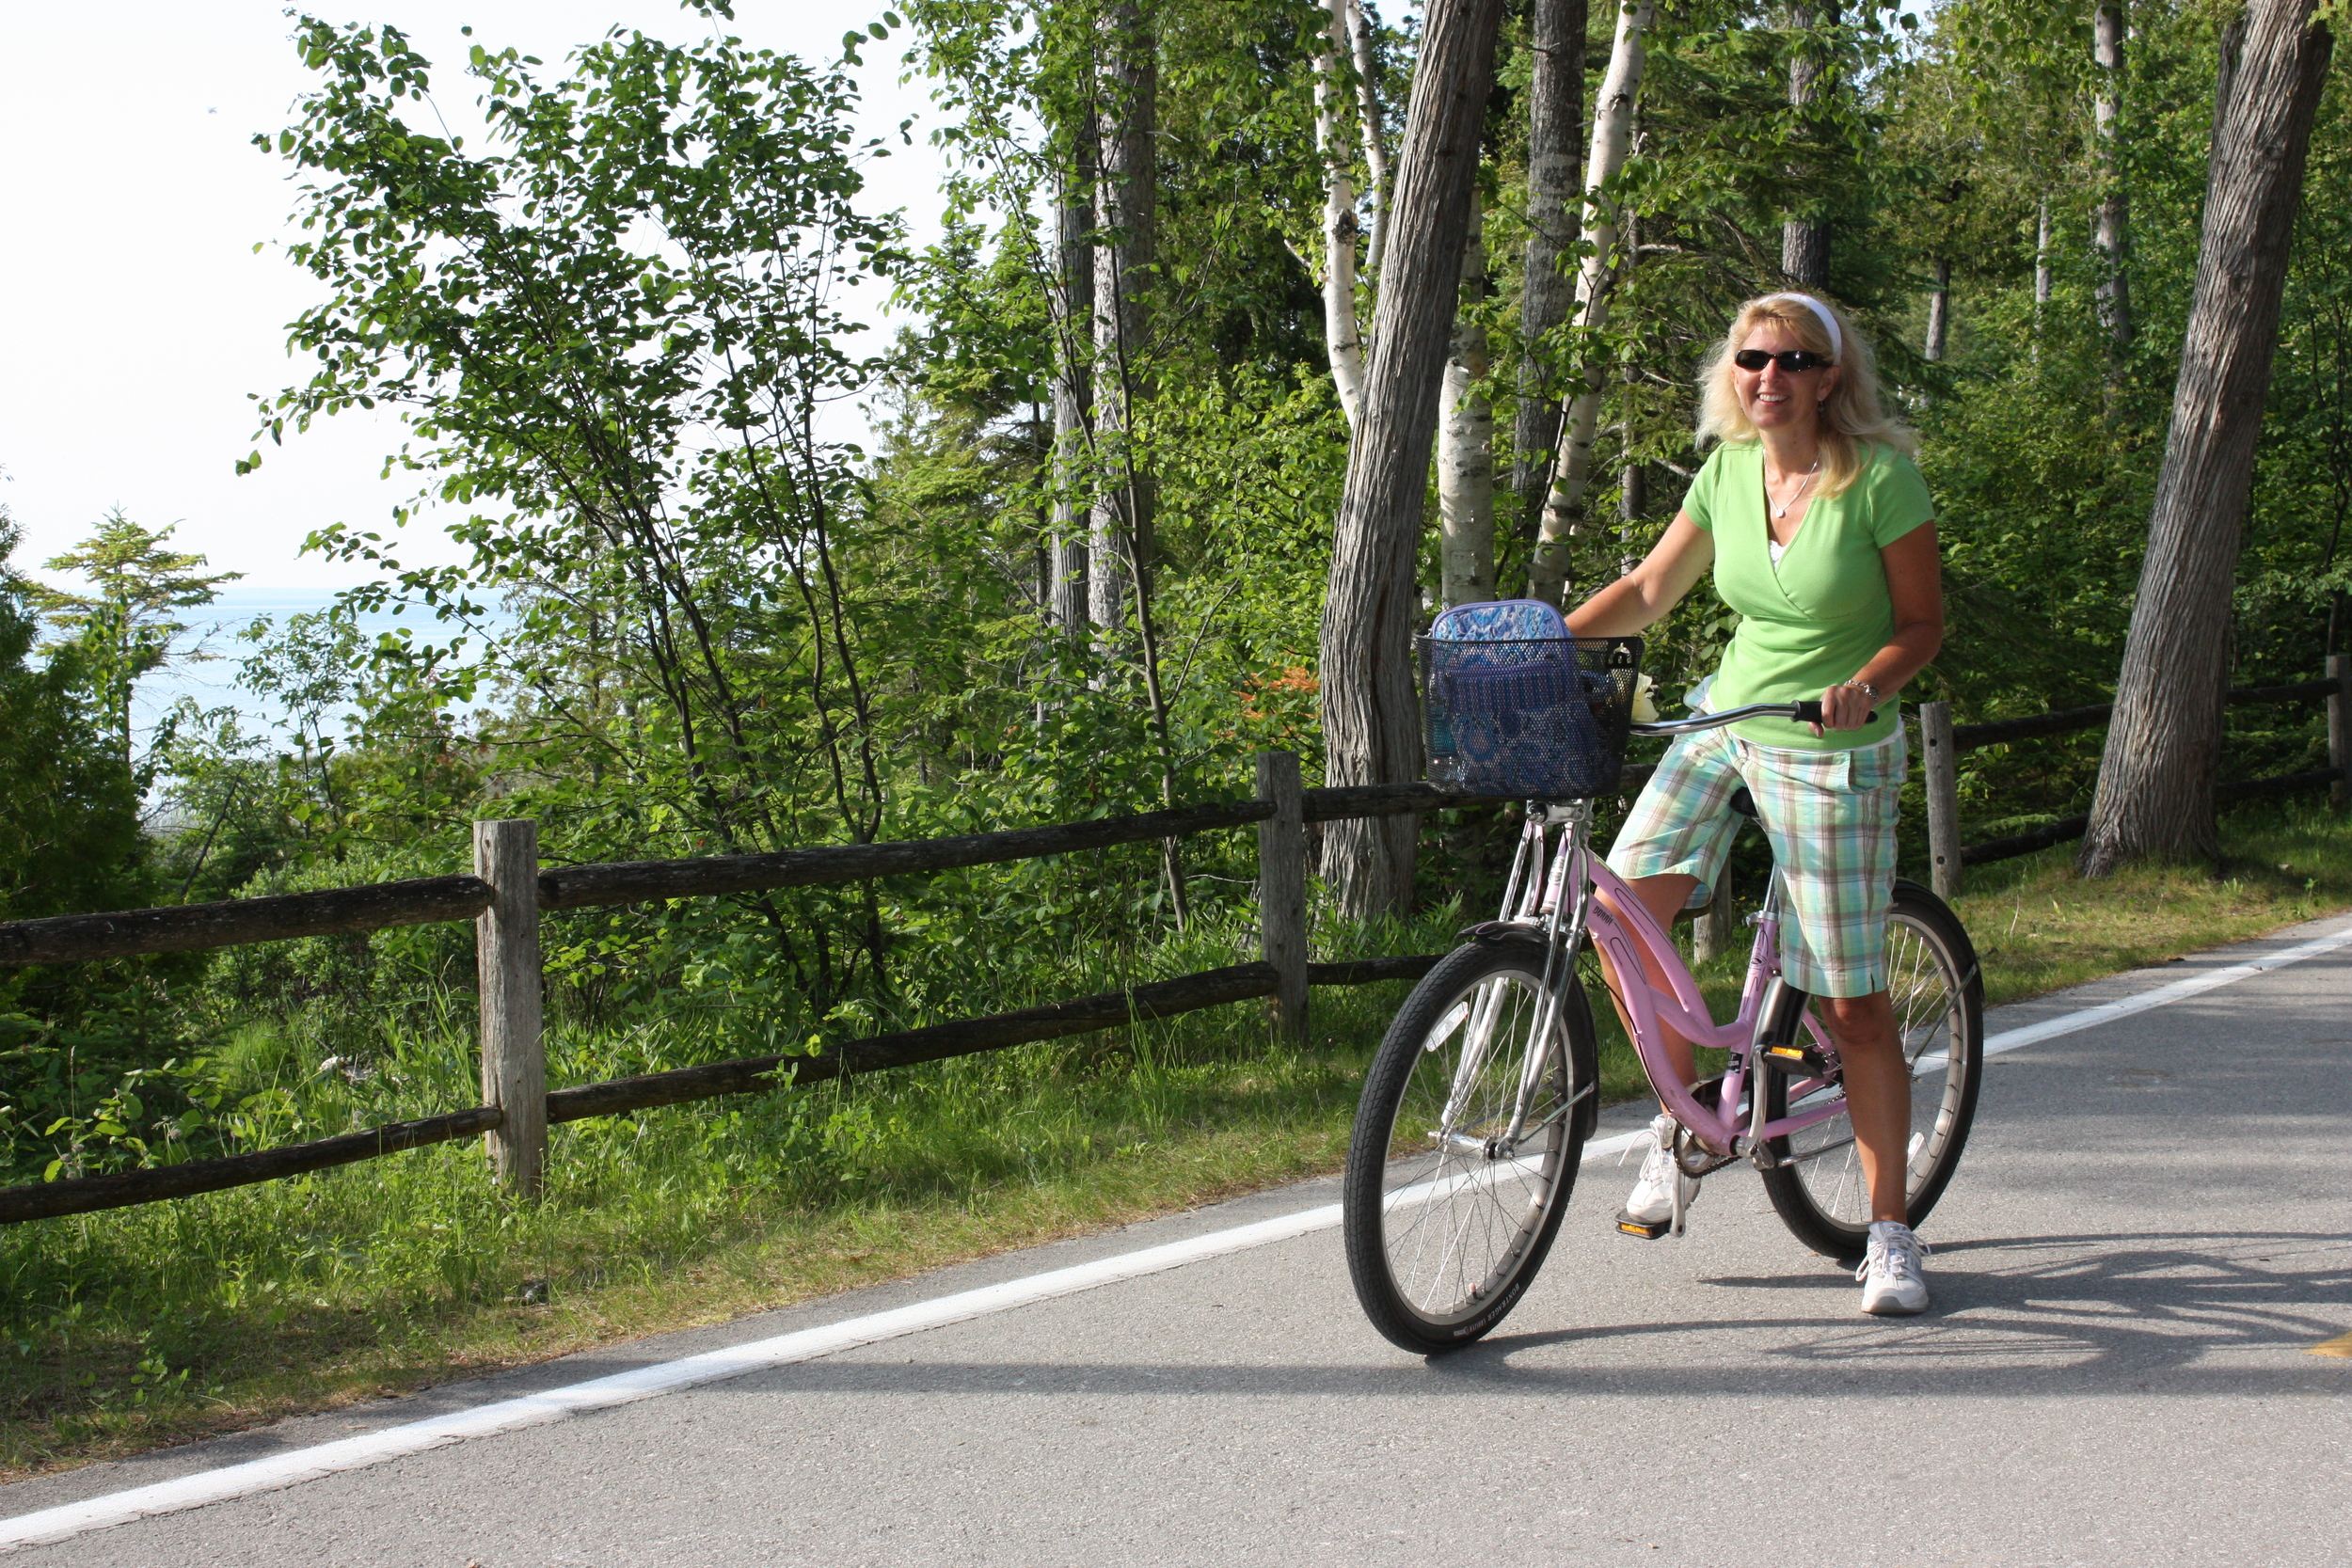 Toni biked 20 miles in one day on her super cool pink bike that came complete with a flower on the handlebars